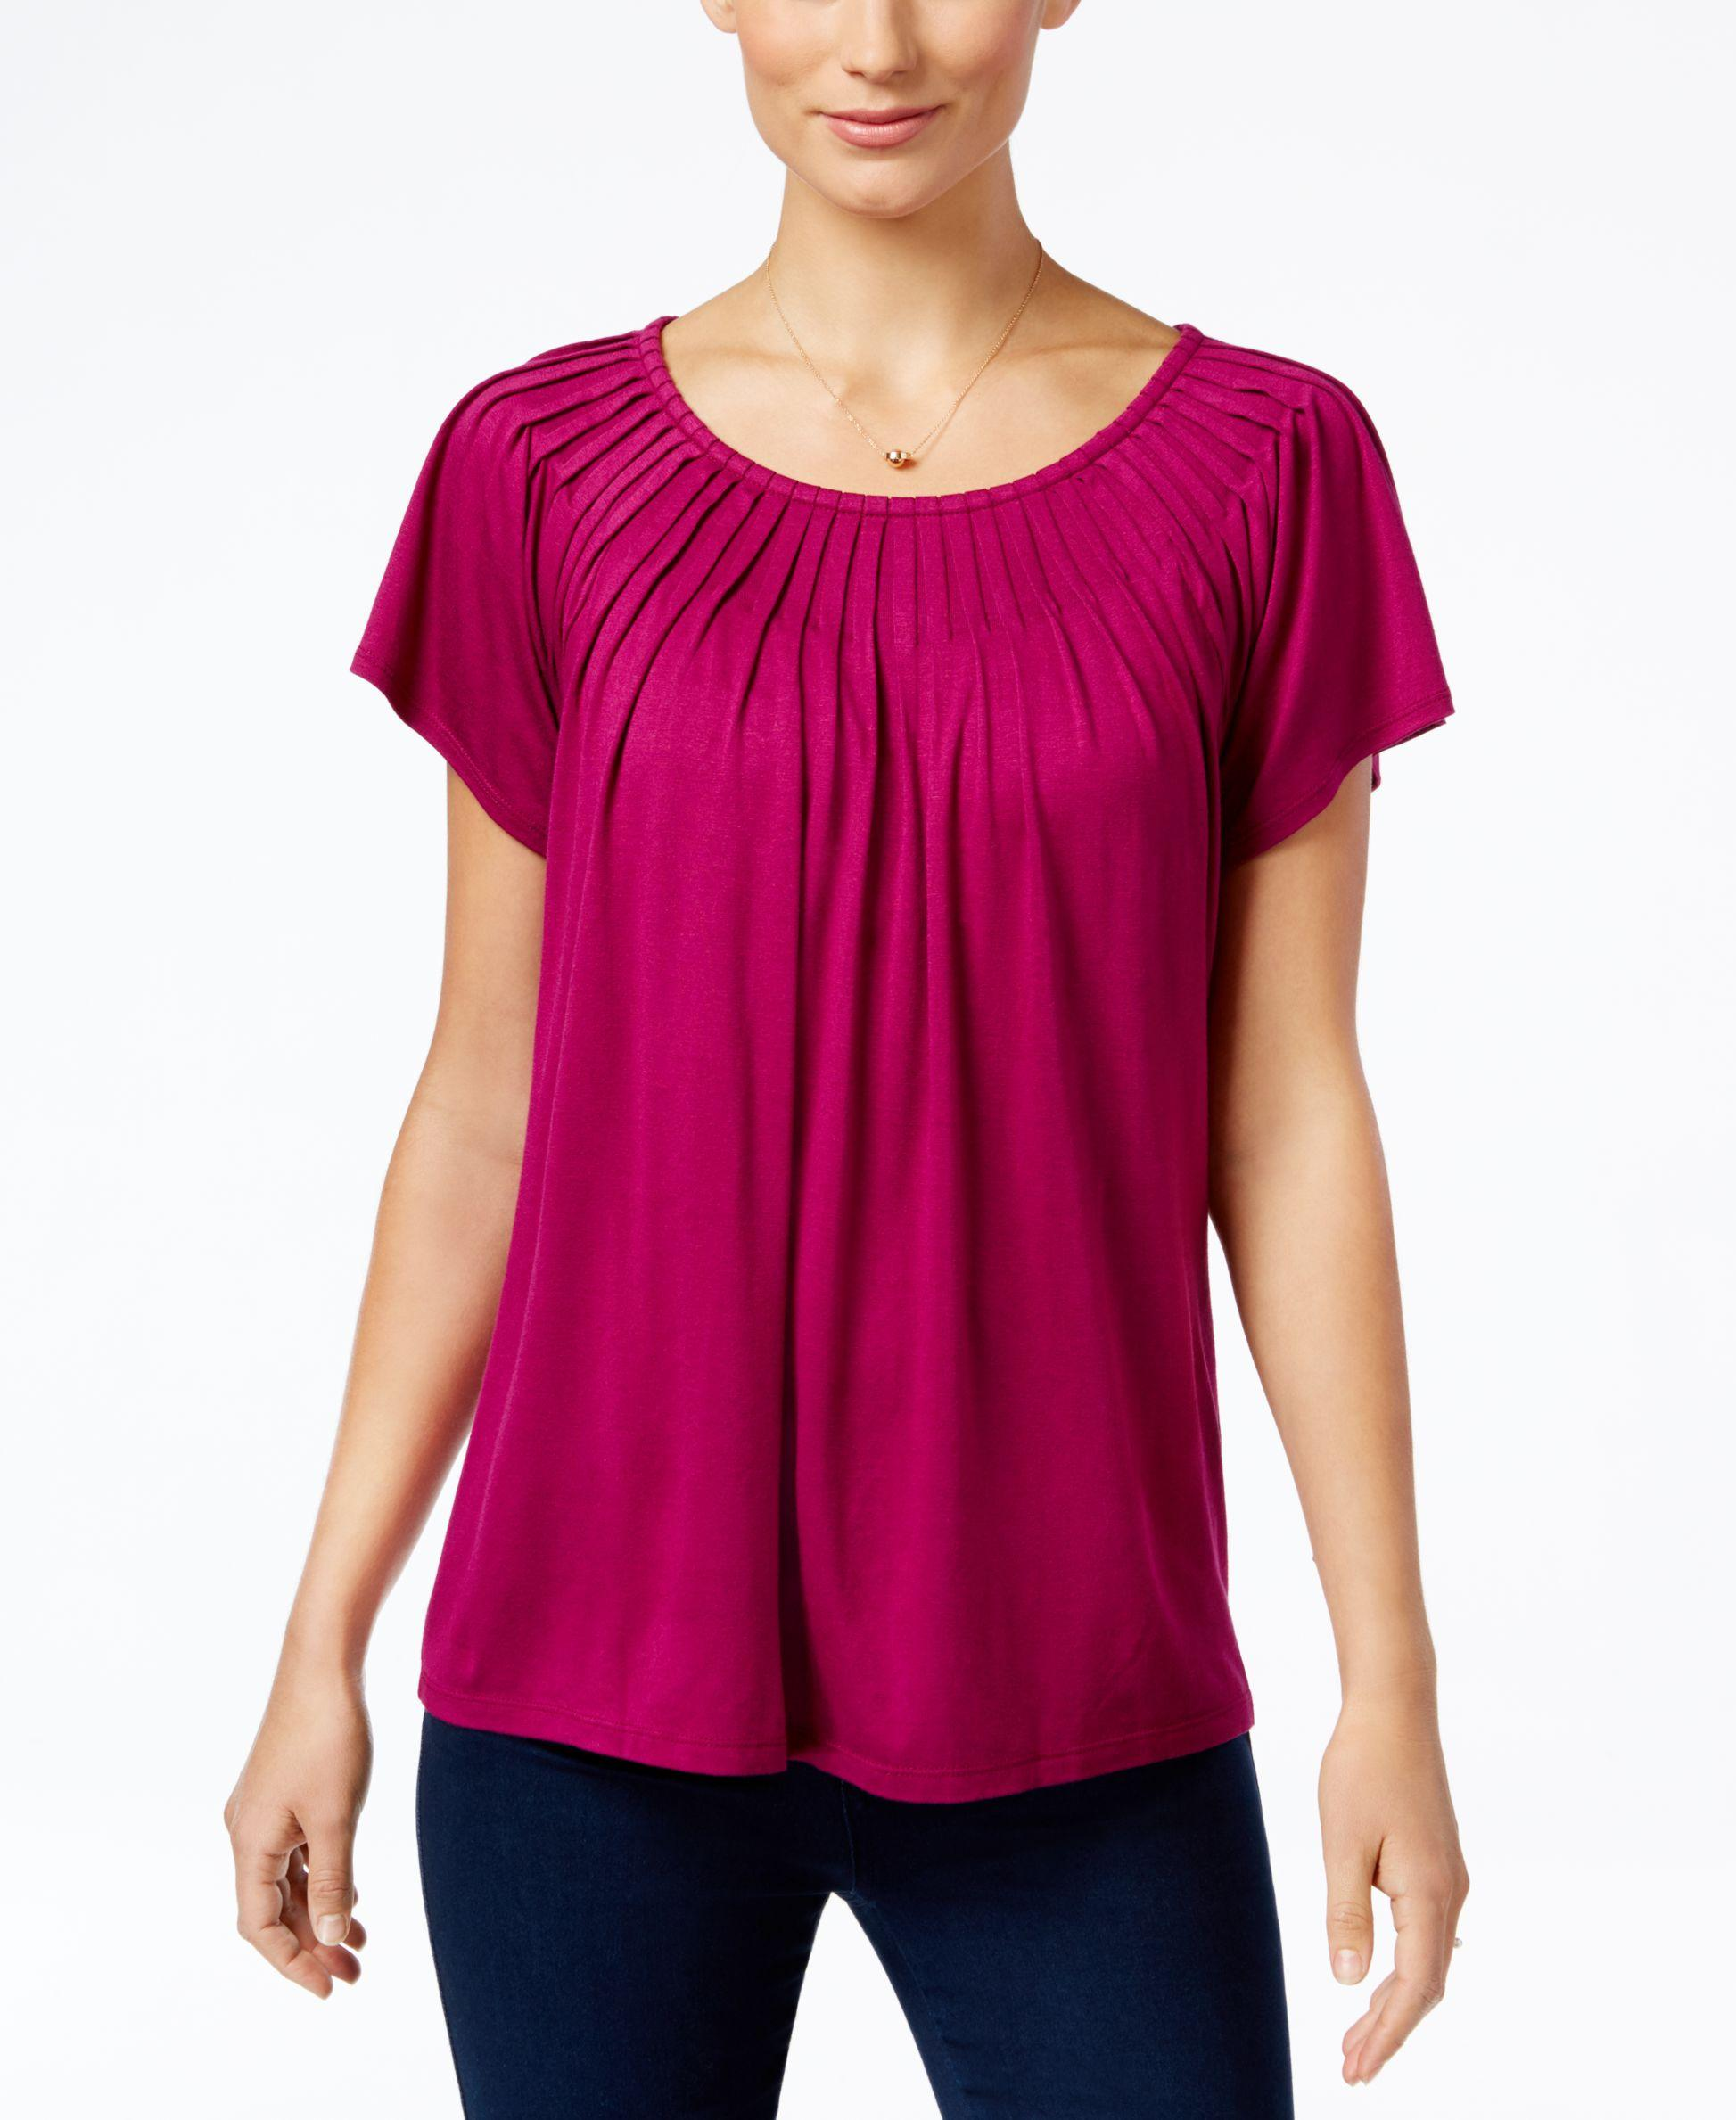 Product Description Infuse your casual look with fresh chic in this plus size top from Style & Co.